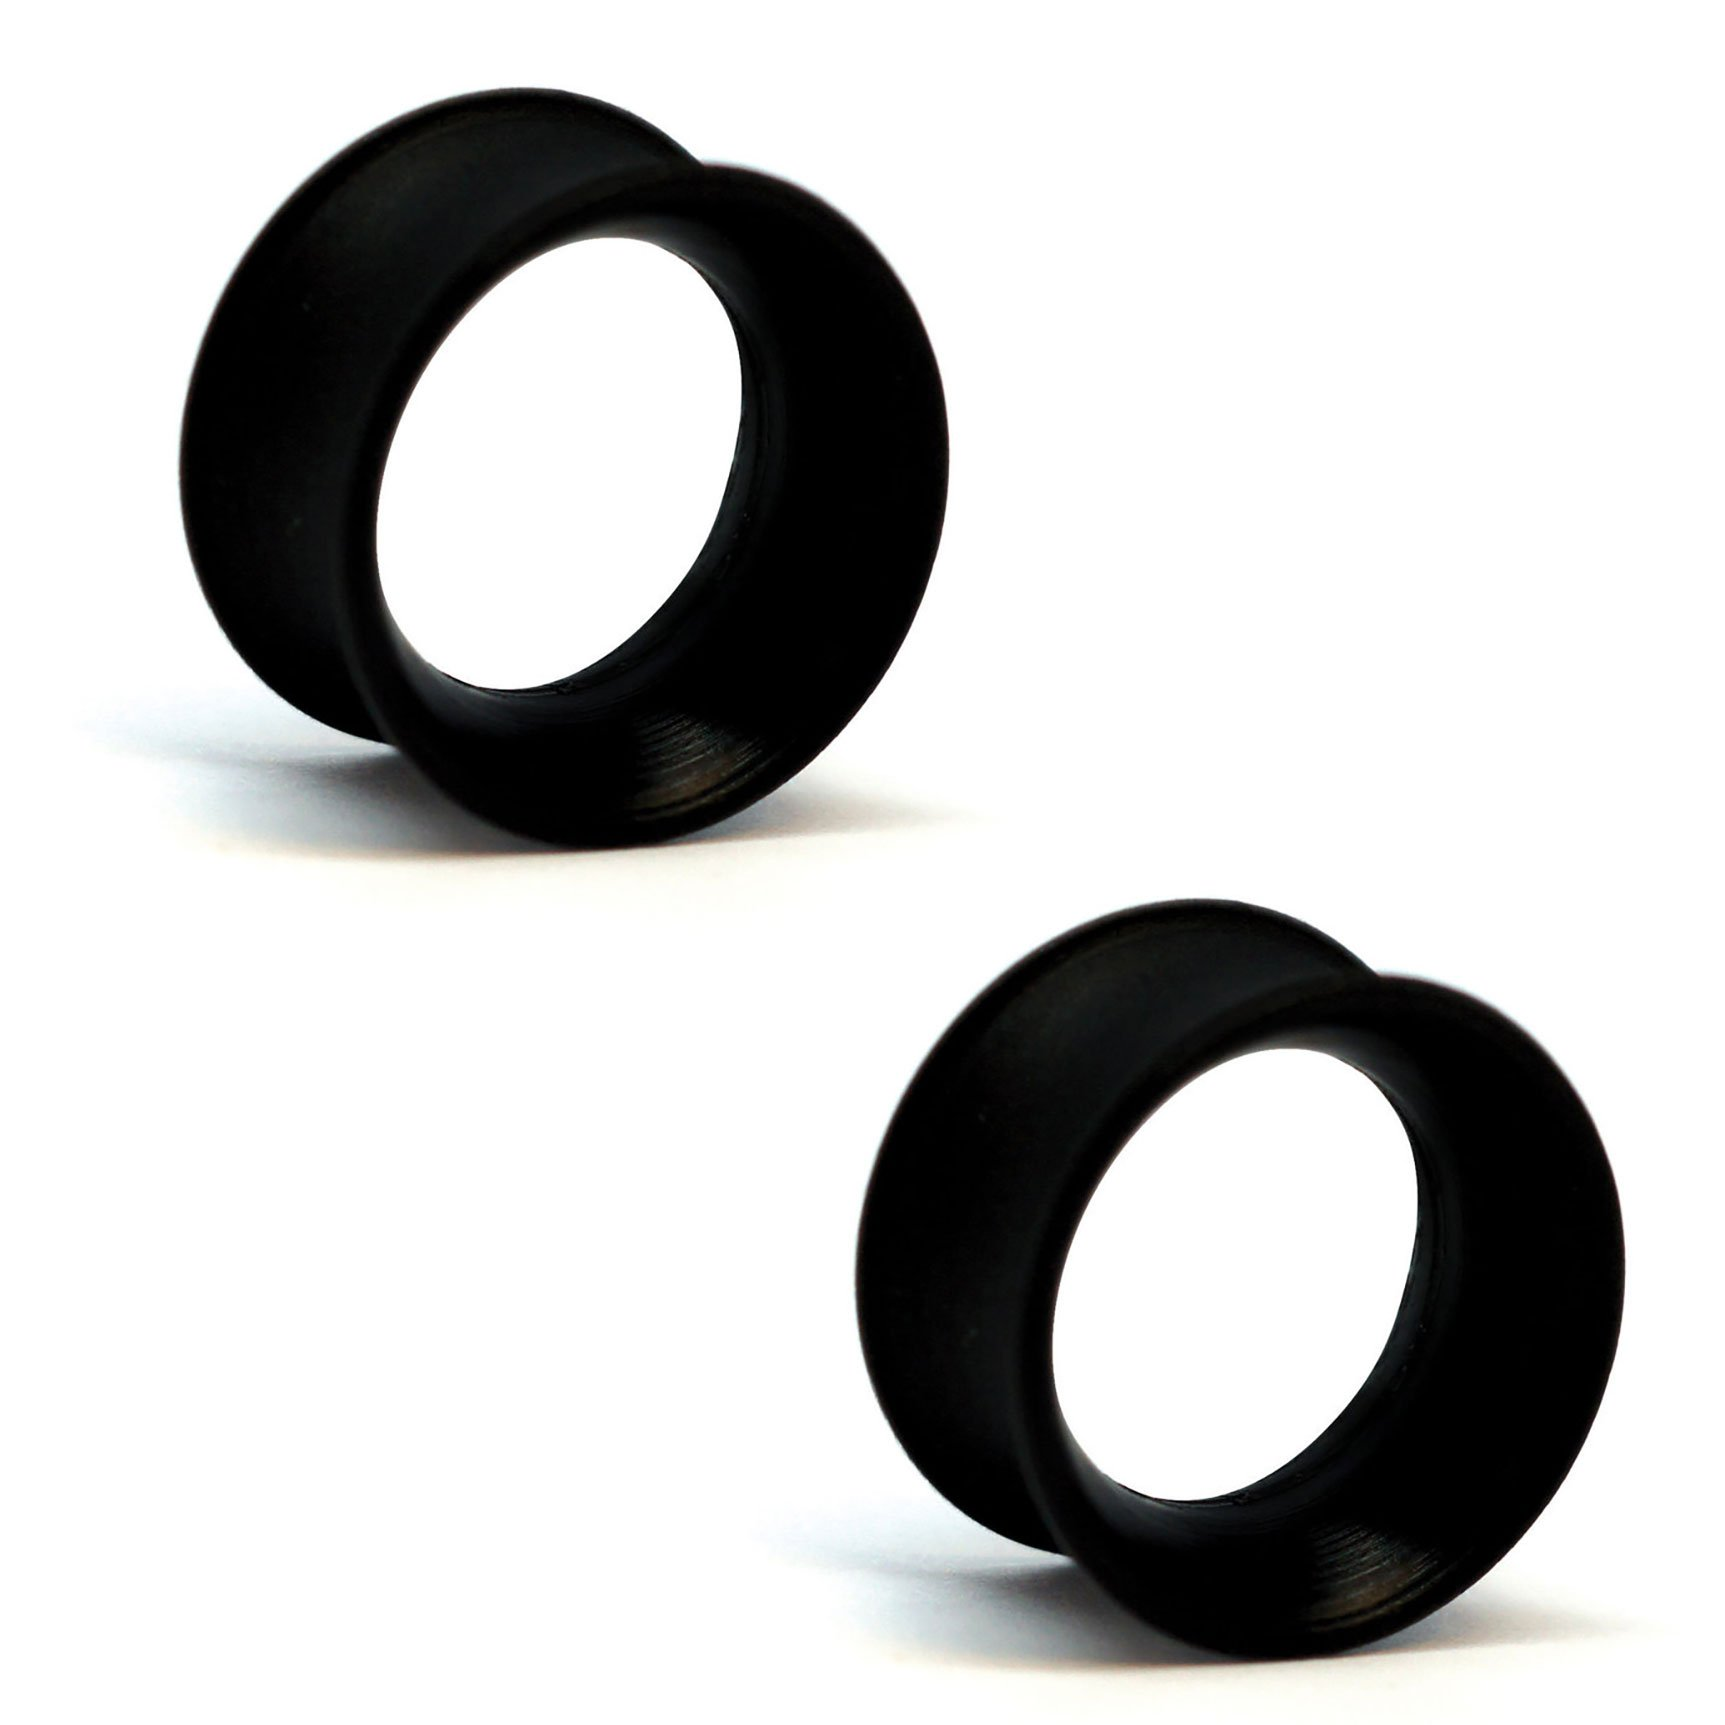 Pair of Silicone Double Flared Skin Eyelets: 9/16'', wearable length: 5/16'', Black